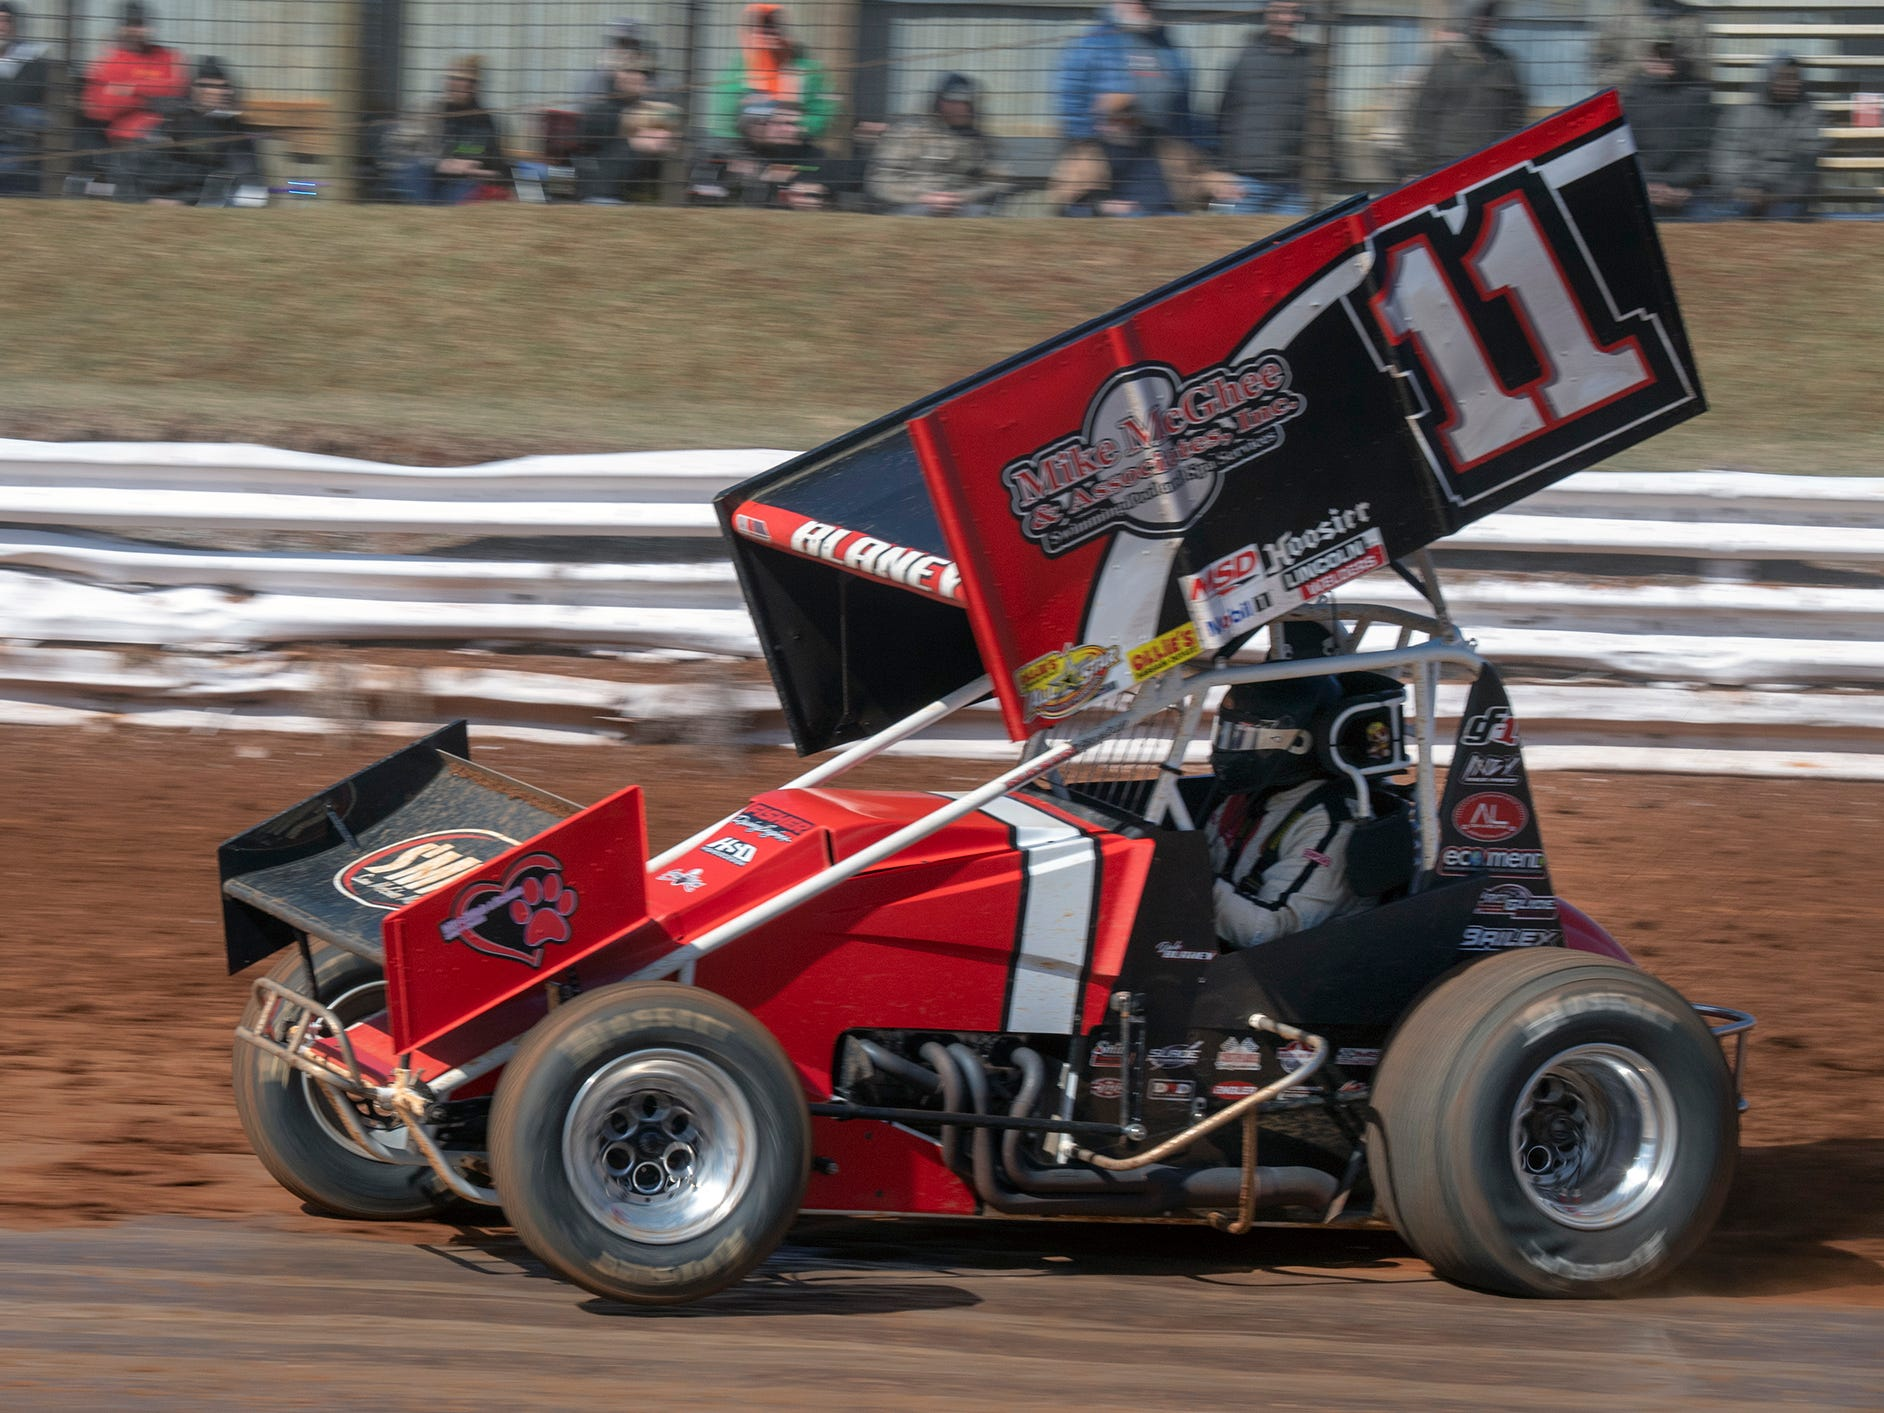 The #11 car driven by TJ Stutts races during the Williams Grove season opener for 410 sprints Sunday March 17, 2019.